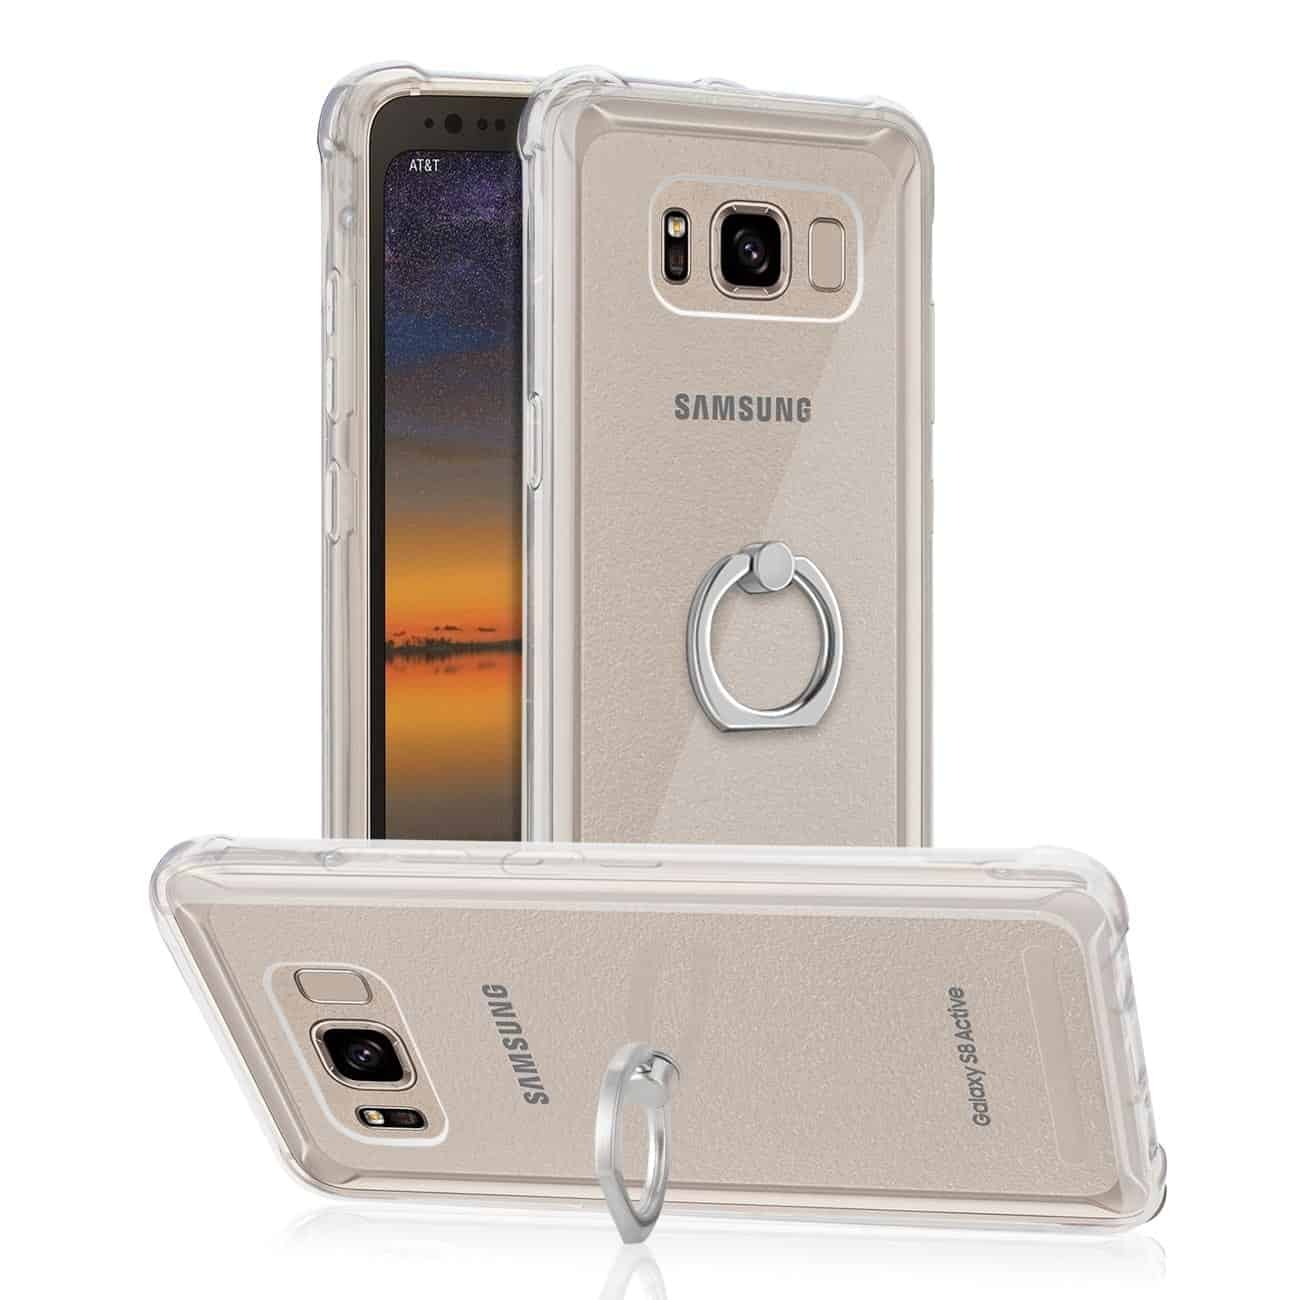 SAMSUNG GALAXY S8 ACTIVE TRANSPARENT AIR CUSHION PROTECTOR BUMPER CASE WITH RING HOLDER IN CLEAR